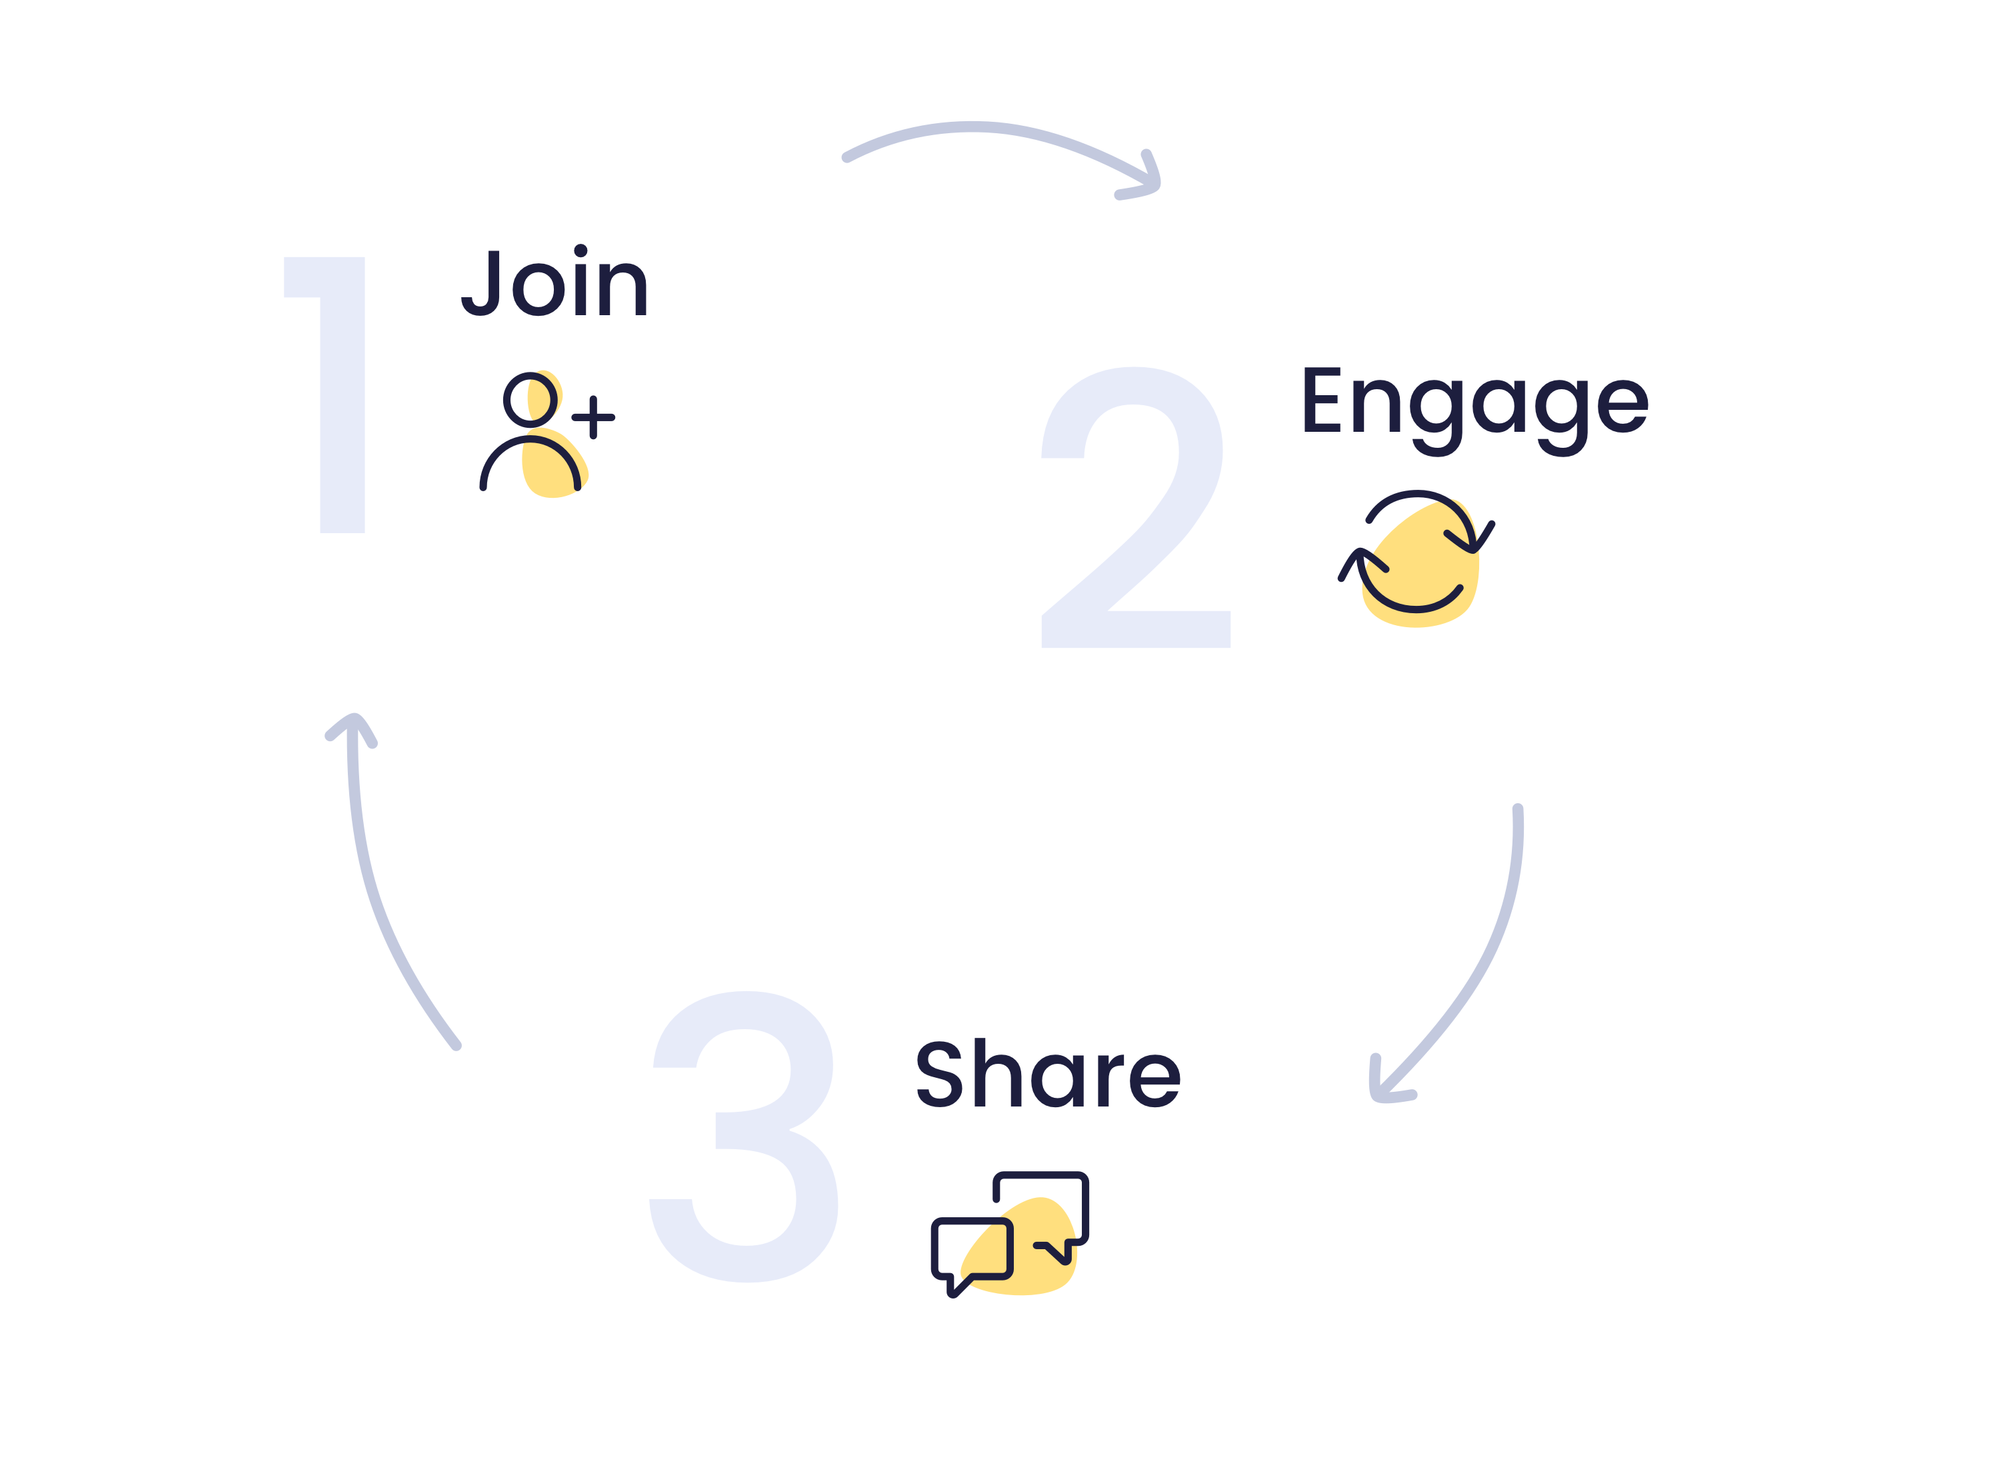 Community building framework by Smile.io Join, Engage, Share cycle